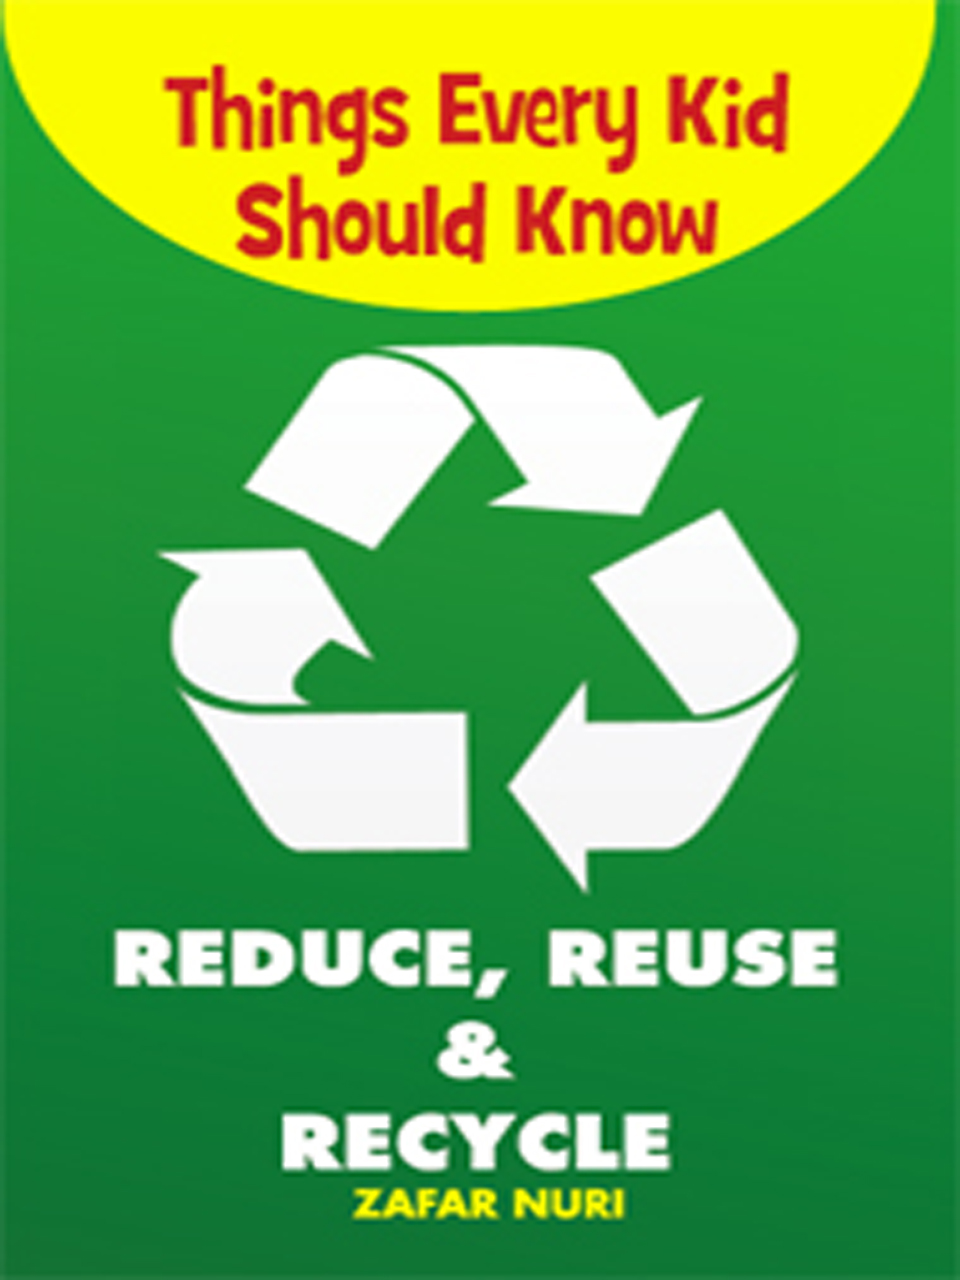 Reduce reuse recycle for kids australia for How can i recycle things at home